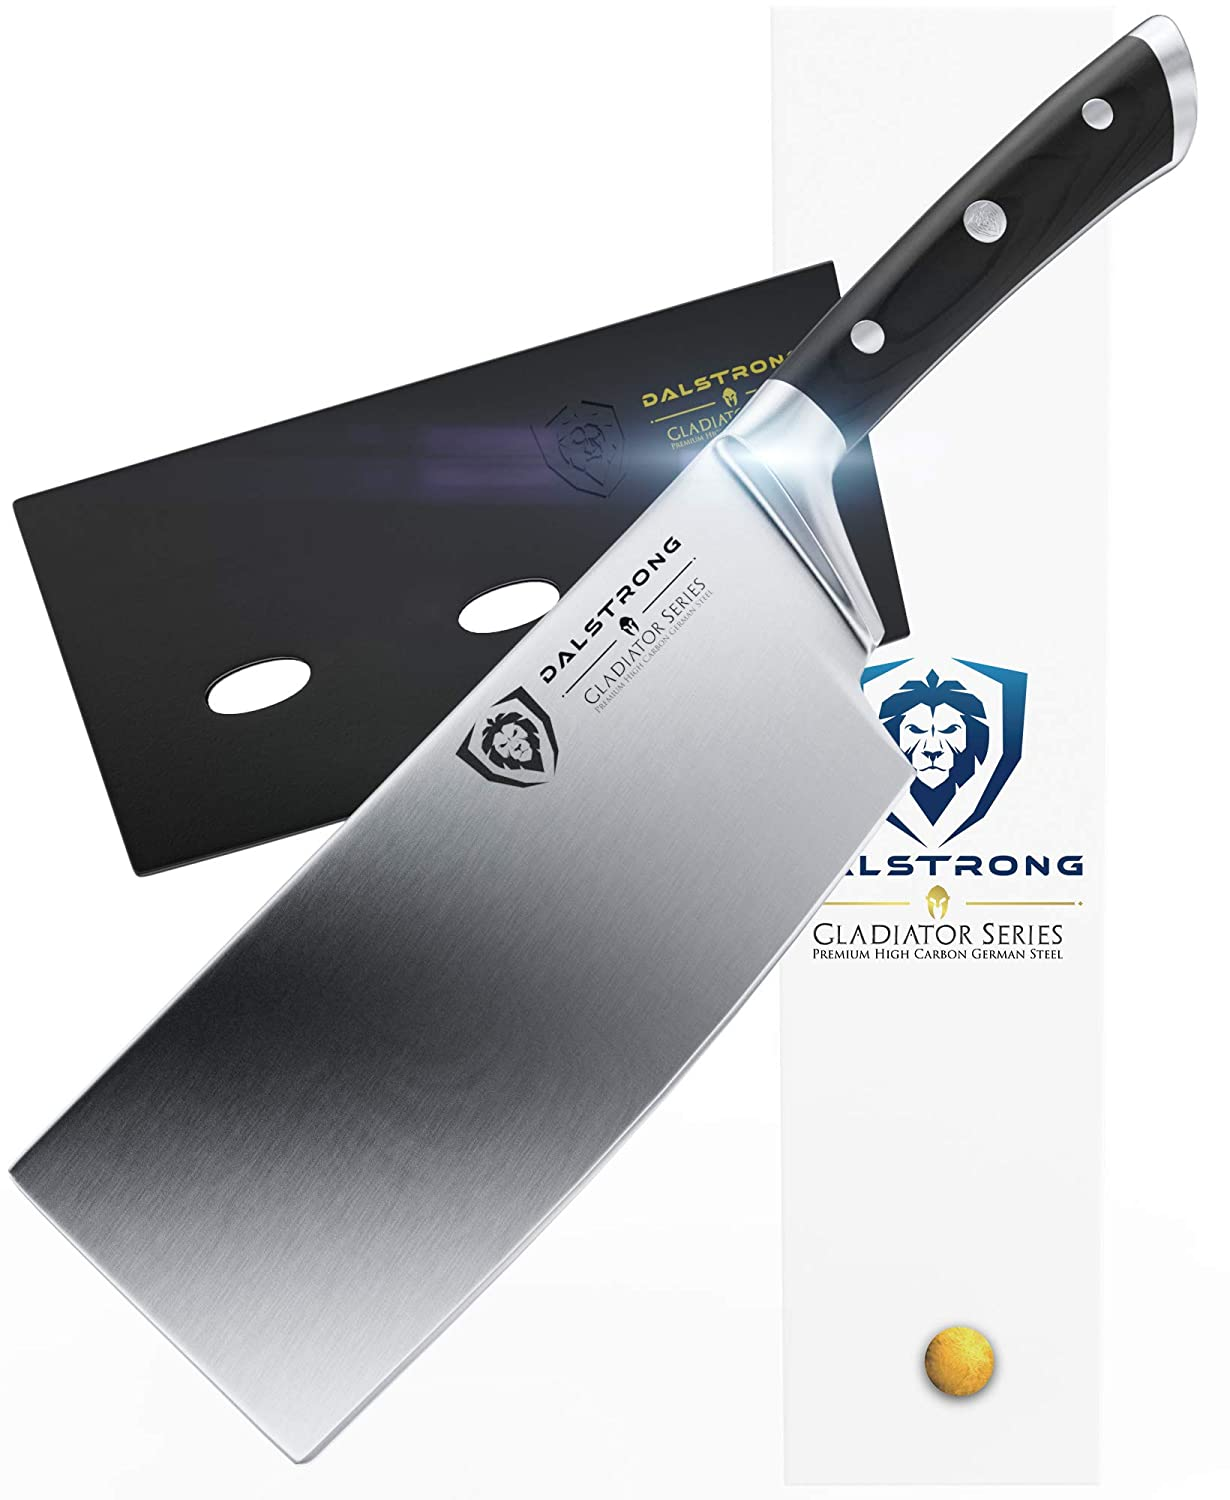 DALSTRONG Cleaver - Gladiator Series - German HC Steel - 7 (152 mm) - Sheath Dalstrong Inc GS-7inch-Cleaver